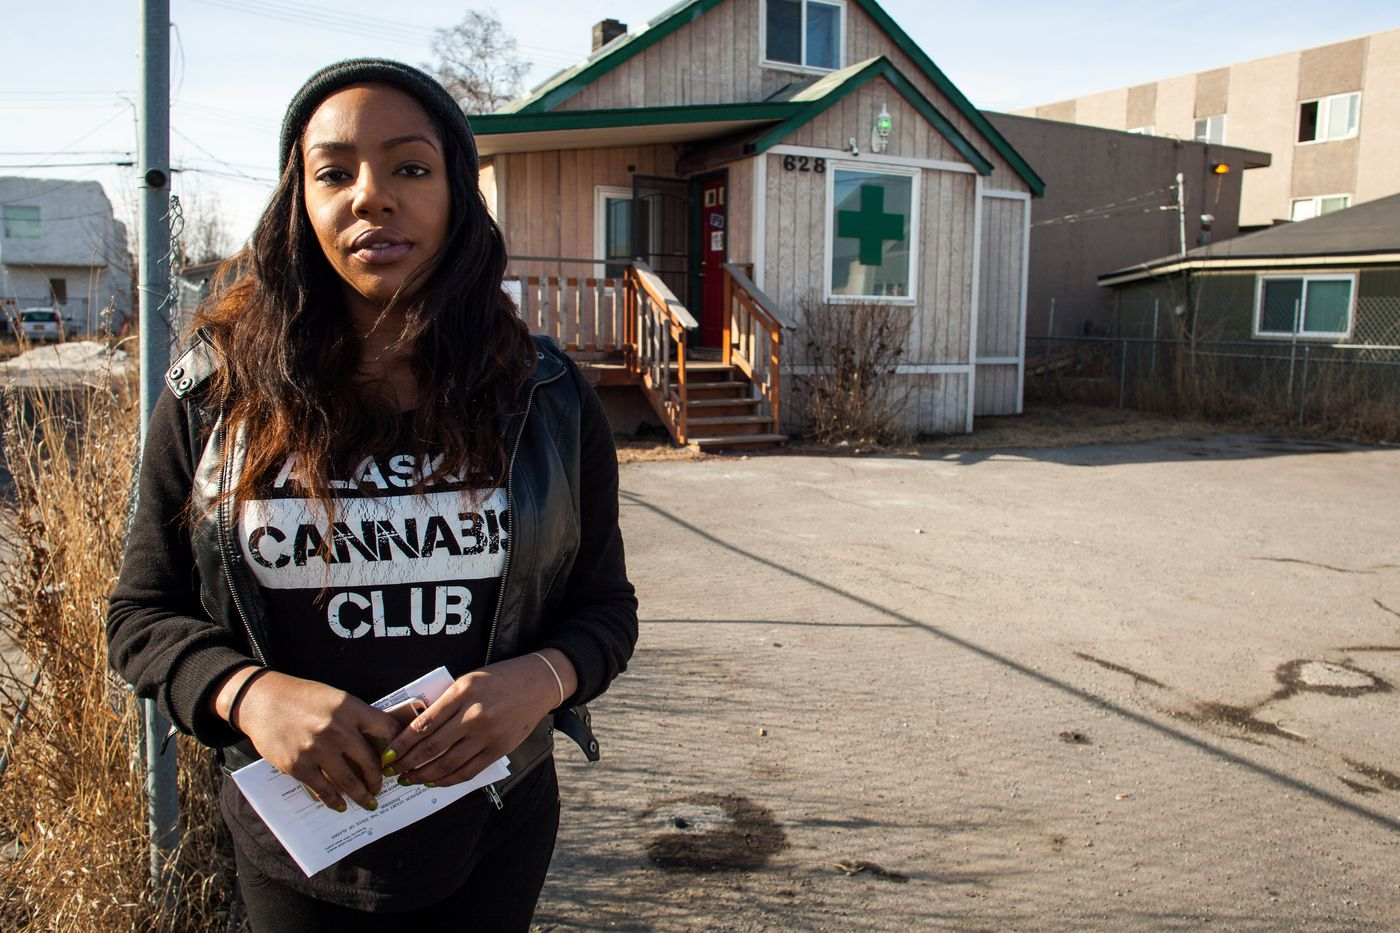 """Alaska Cannabis Club owner Charlo Greene with warrant in hand, said police raided her home around 1 p.m. on March 20, 2015. A statement from Anchorage police later said officers were investigating """"reports of the illegal sale of marijuana and other derivatives"""" at the clubhouse."""